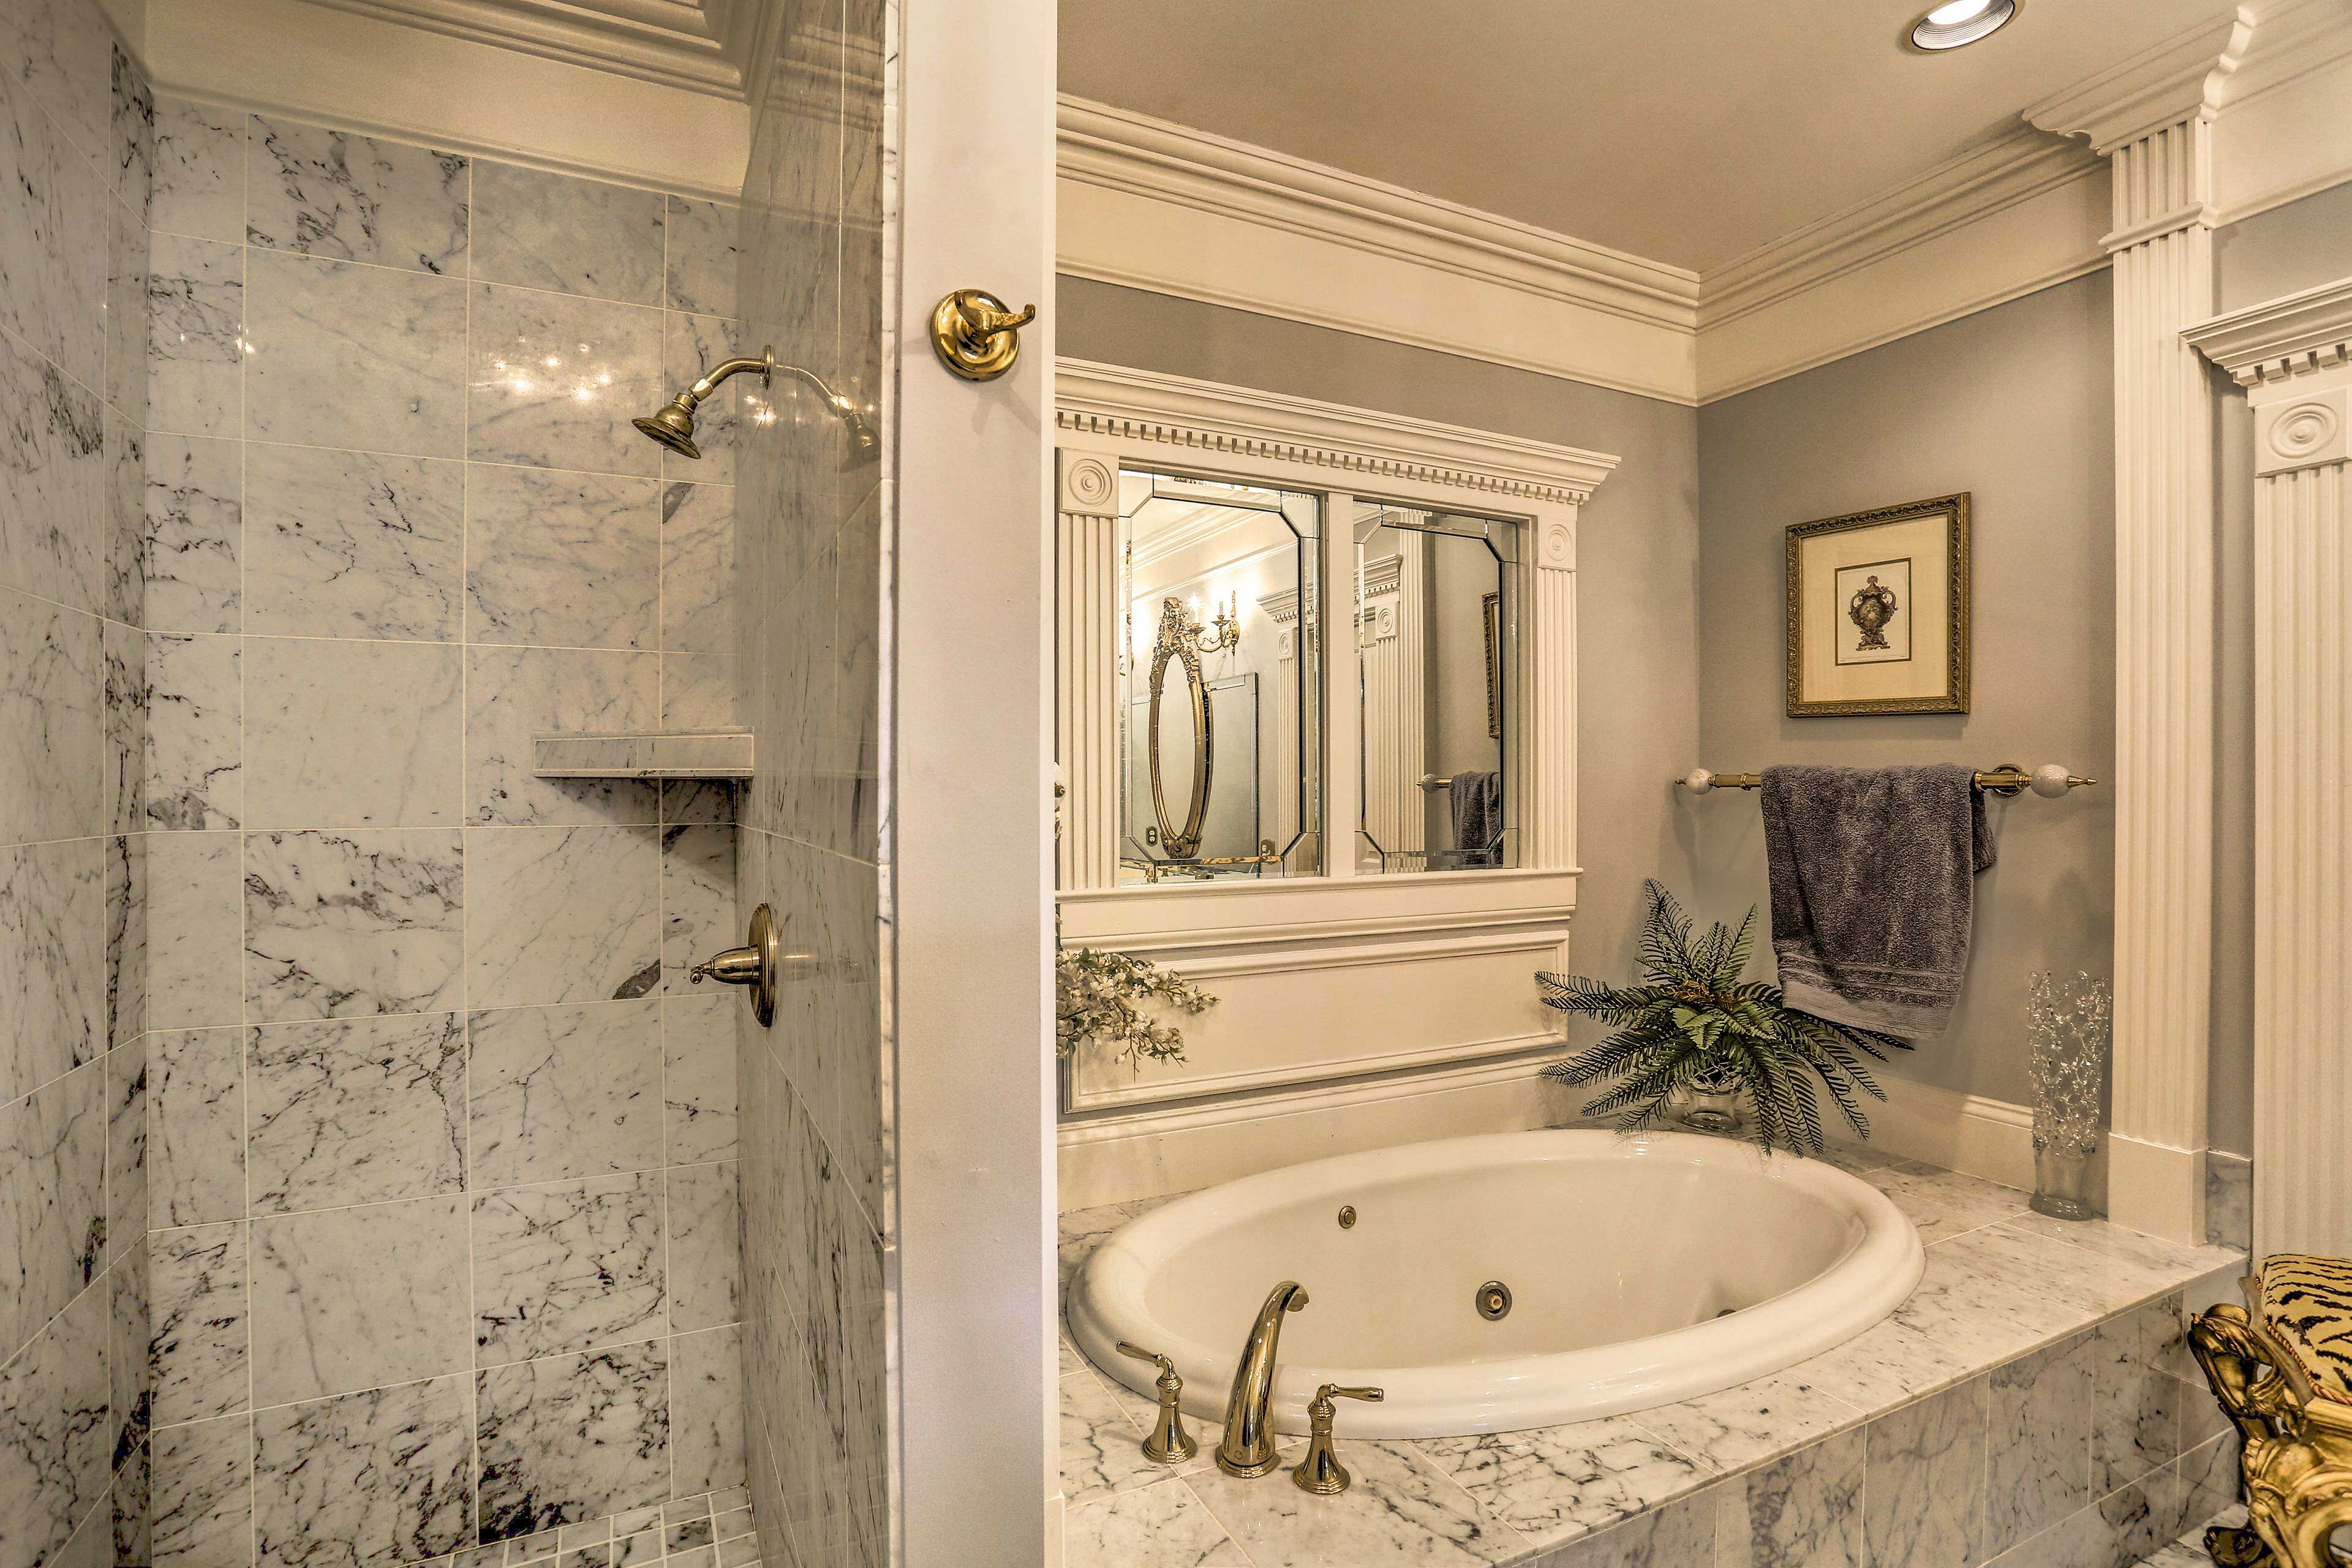 Hop in the shower or soak in the tub - it's your choice!